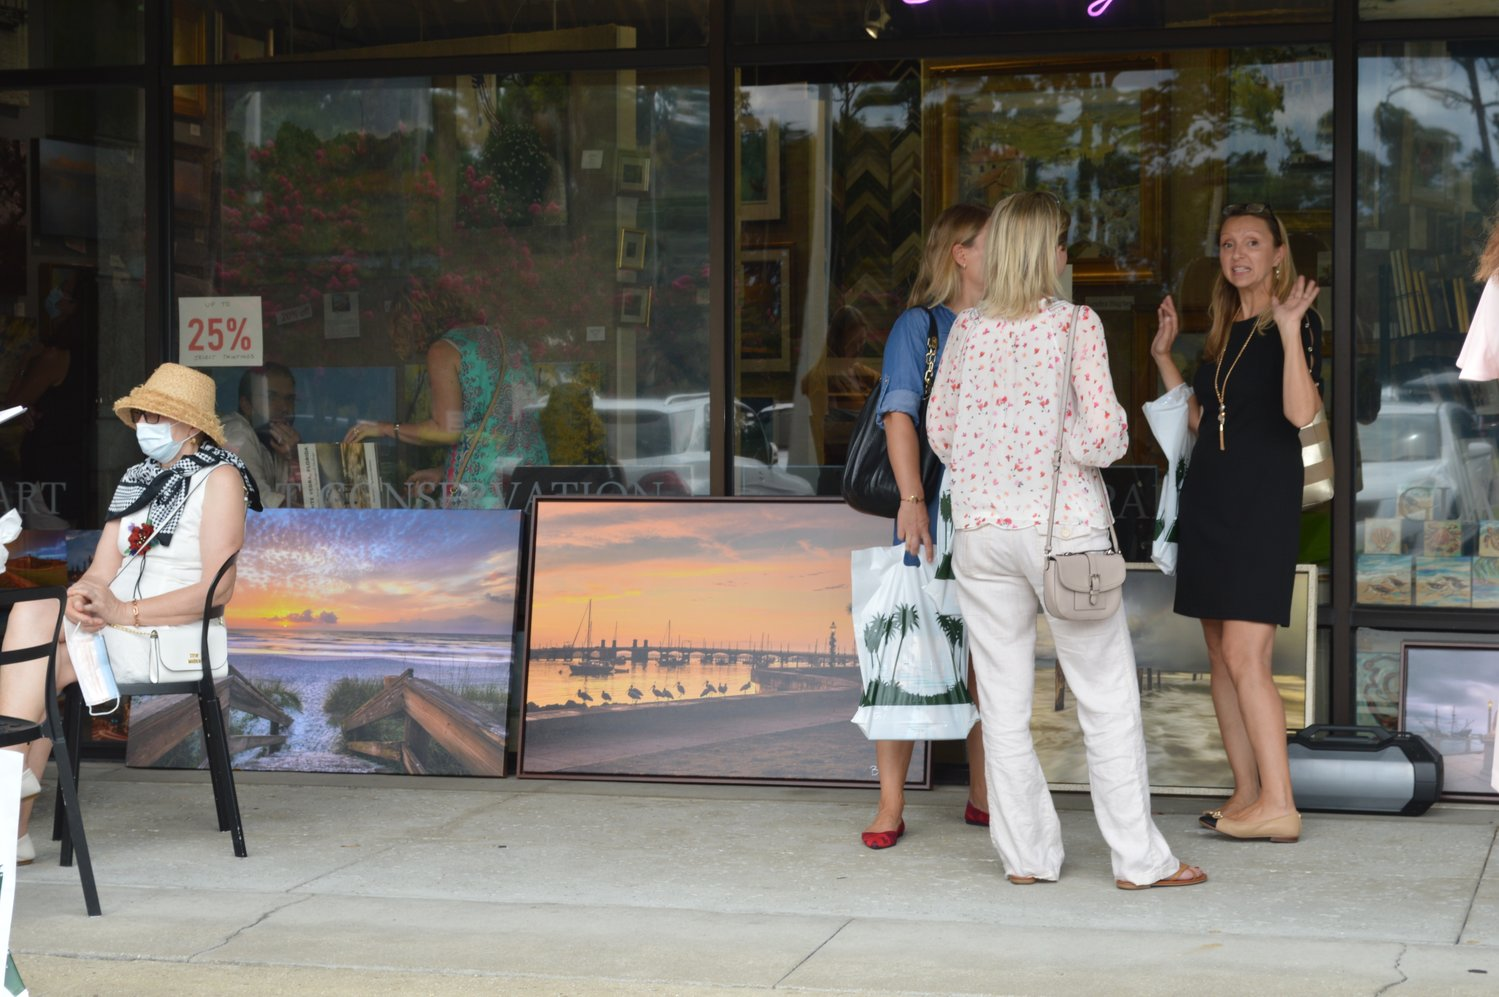 On Saturday Aug. 29, members of the Ponte Vedra community gathered together at the Village Arts Gallery to celebrate the release of Dr. Razvan Balotescu's first book, a collection of photos titled the St. Augustine Coffee Table Book.